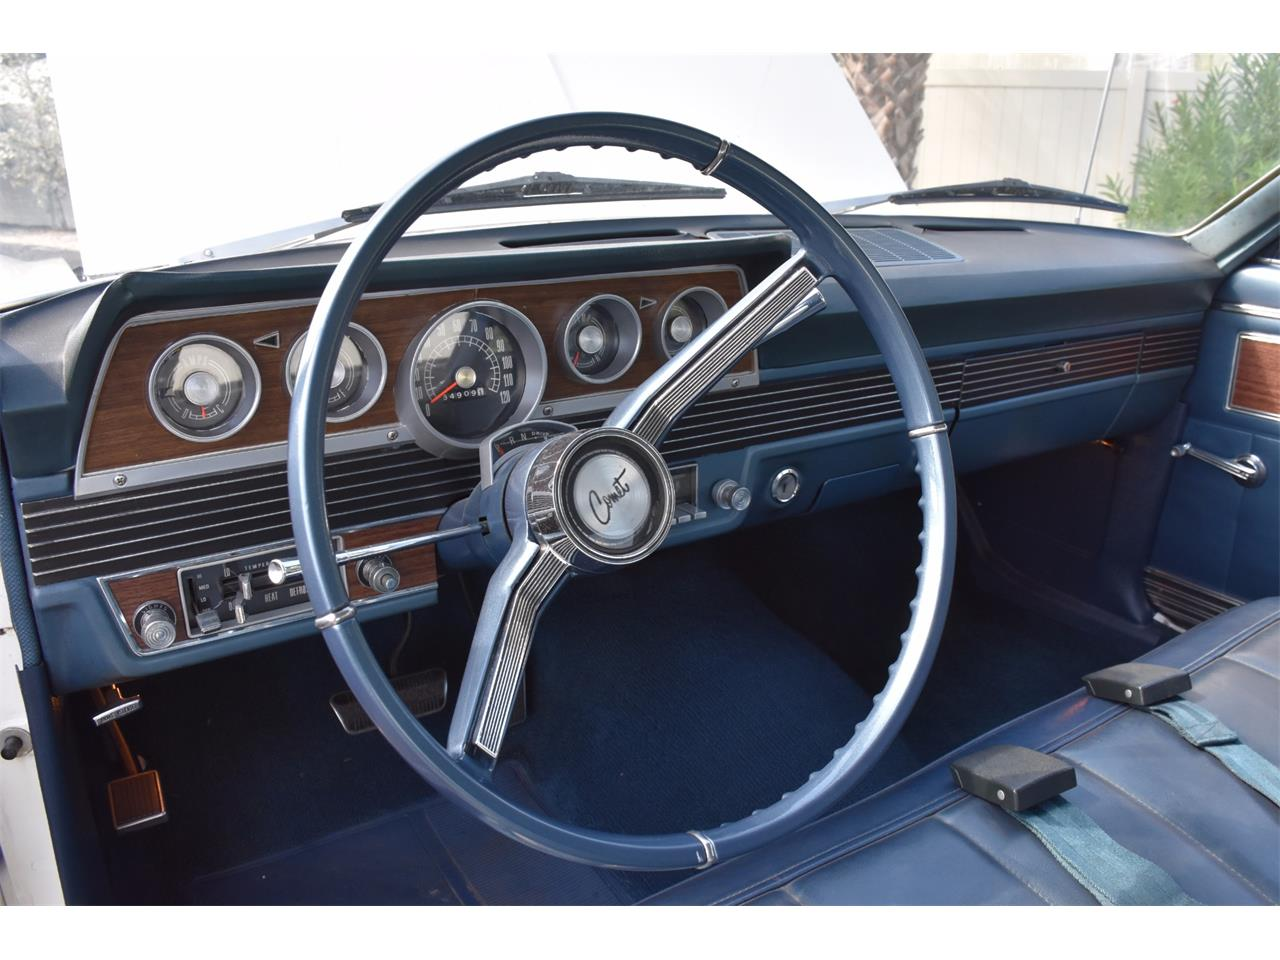 Large Picture of Classic 1966 Mercury Comet located in Florida - $17,983.00 Offered by Ideal Classic Cars - LSPS